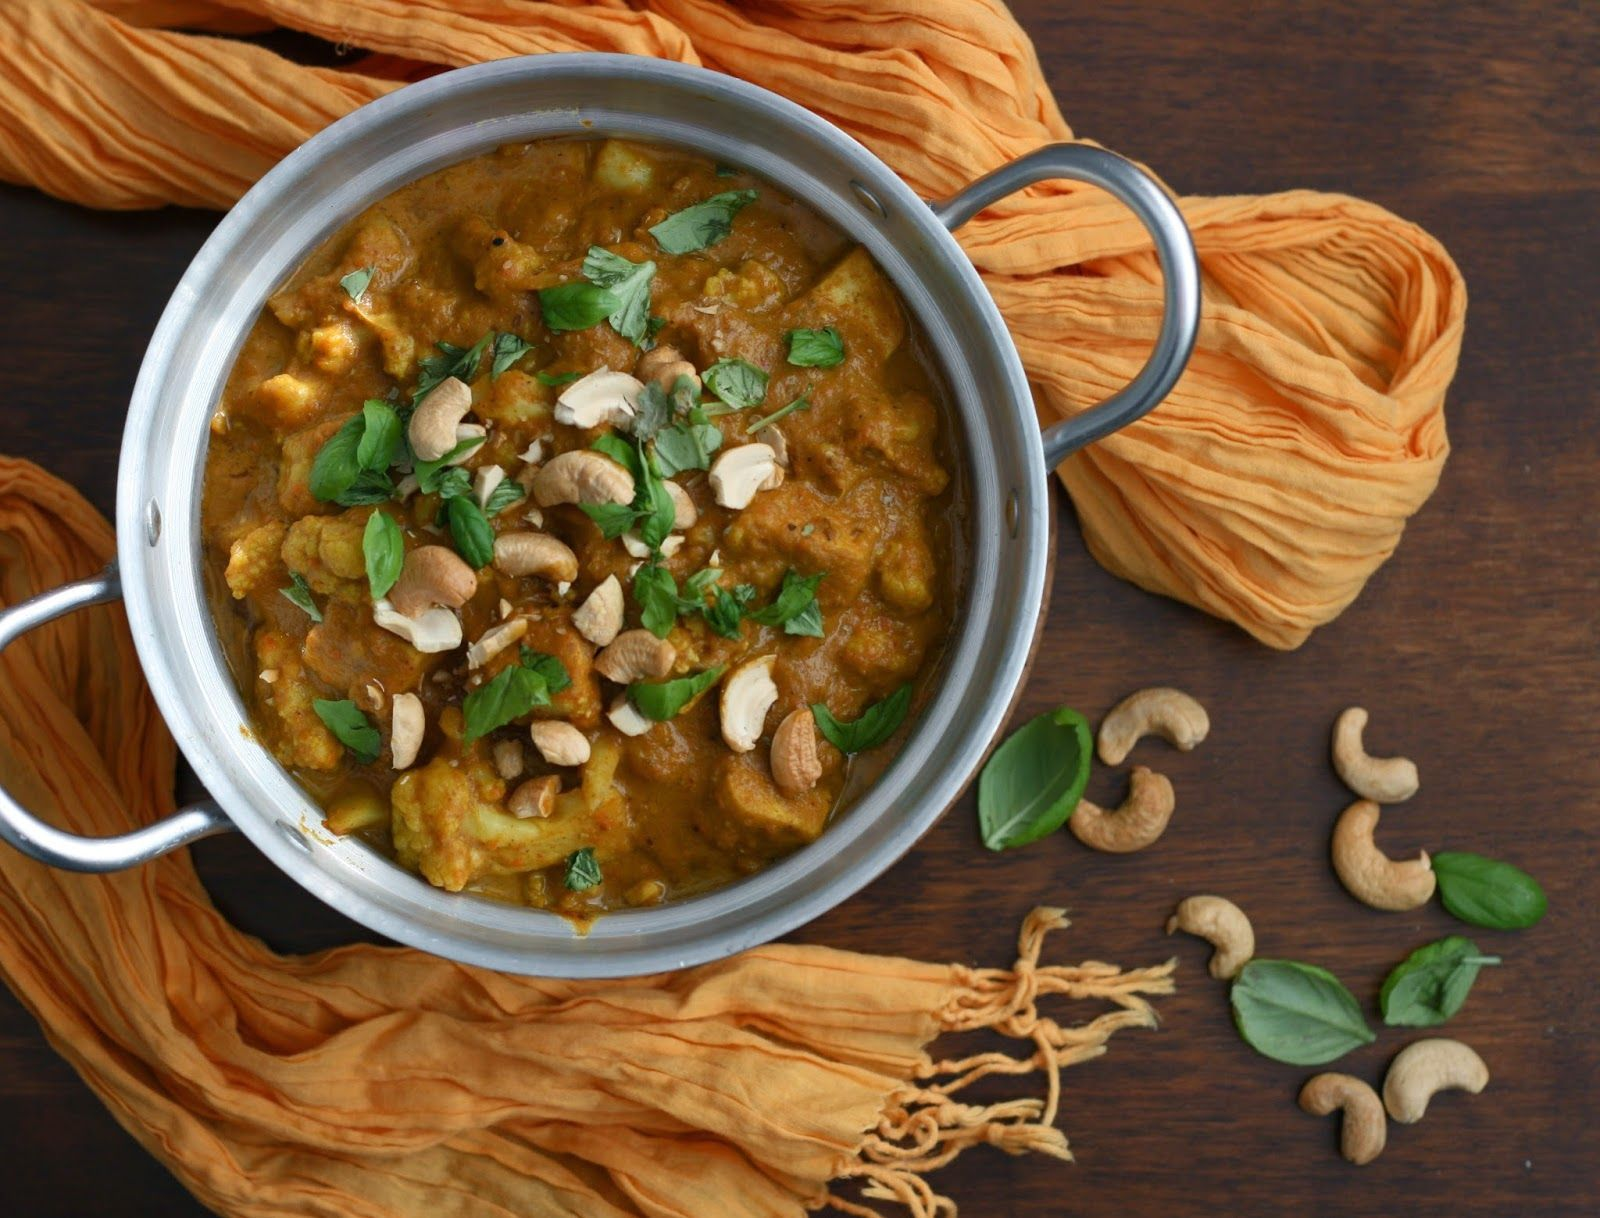 Thick and creamy coconut and cashew curry with tofu, vegan. Includes recipe for homemade curry spice mix! - by Maikin mokomin